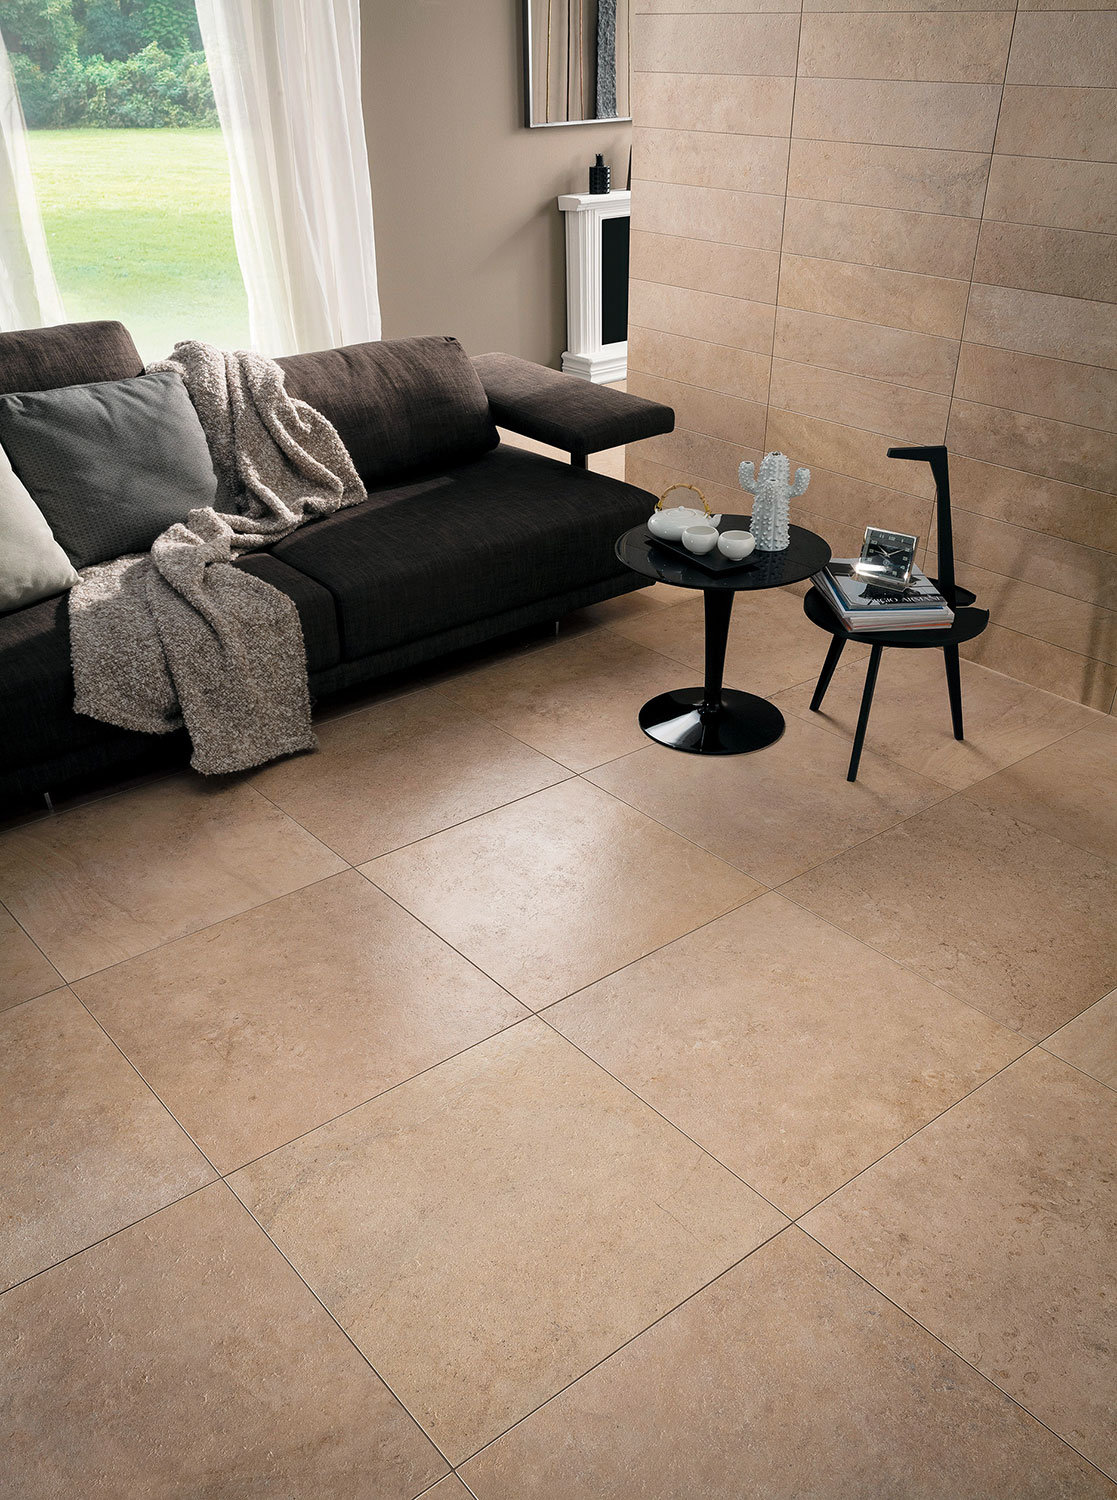 Tribeca The Tribeca Collection Of Ceramic Tiles Mirage Mirage